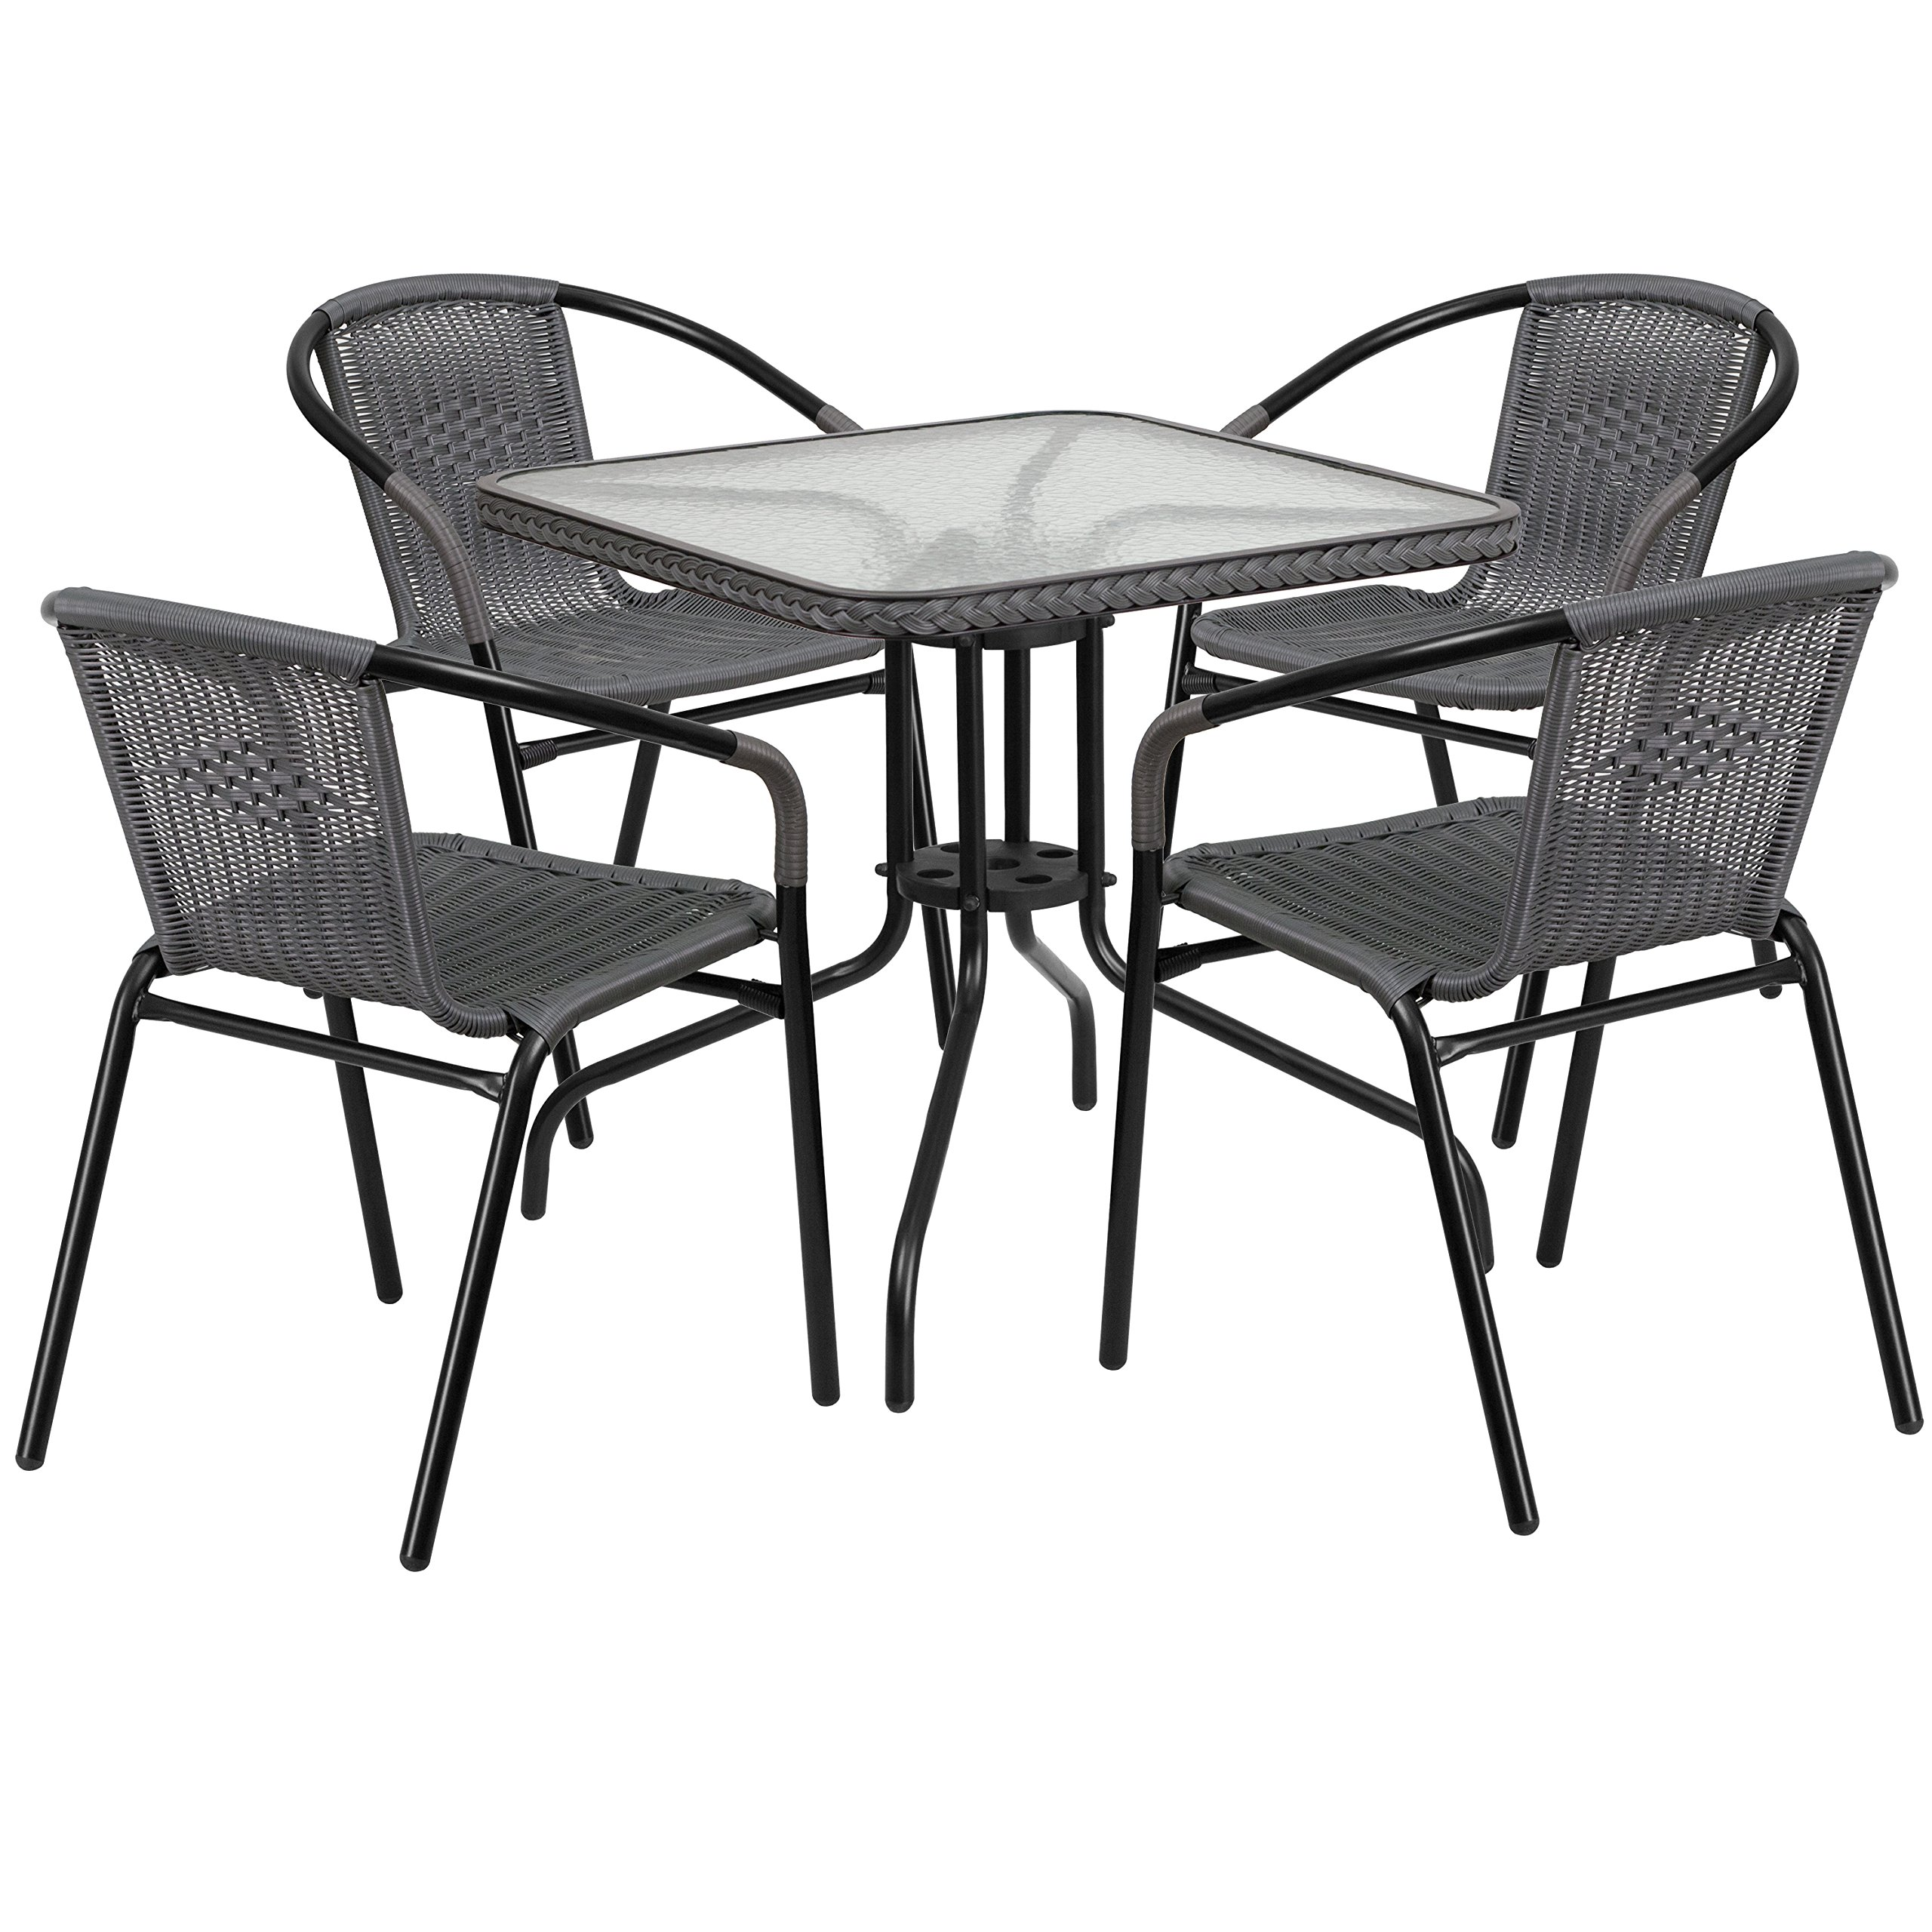 Flash Furniture 28'' Square Glass Metal Table with Gray Rattan Edging and 4 Gray Rattan Stack Chairs by Flash Furniture